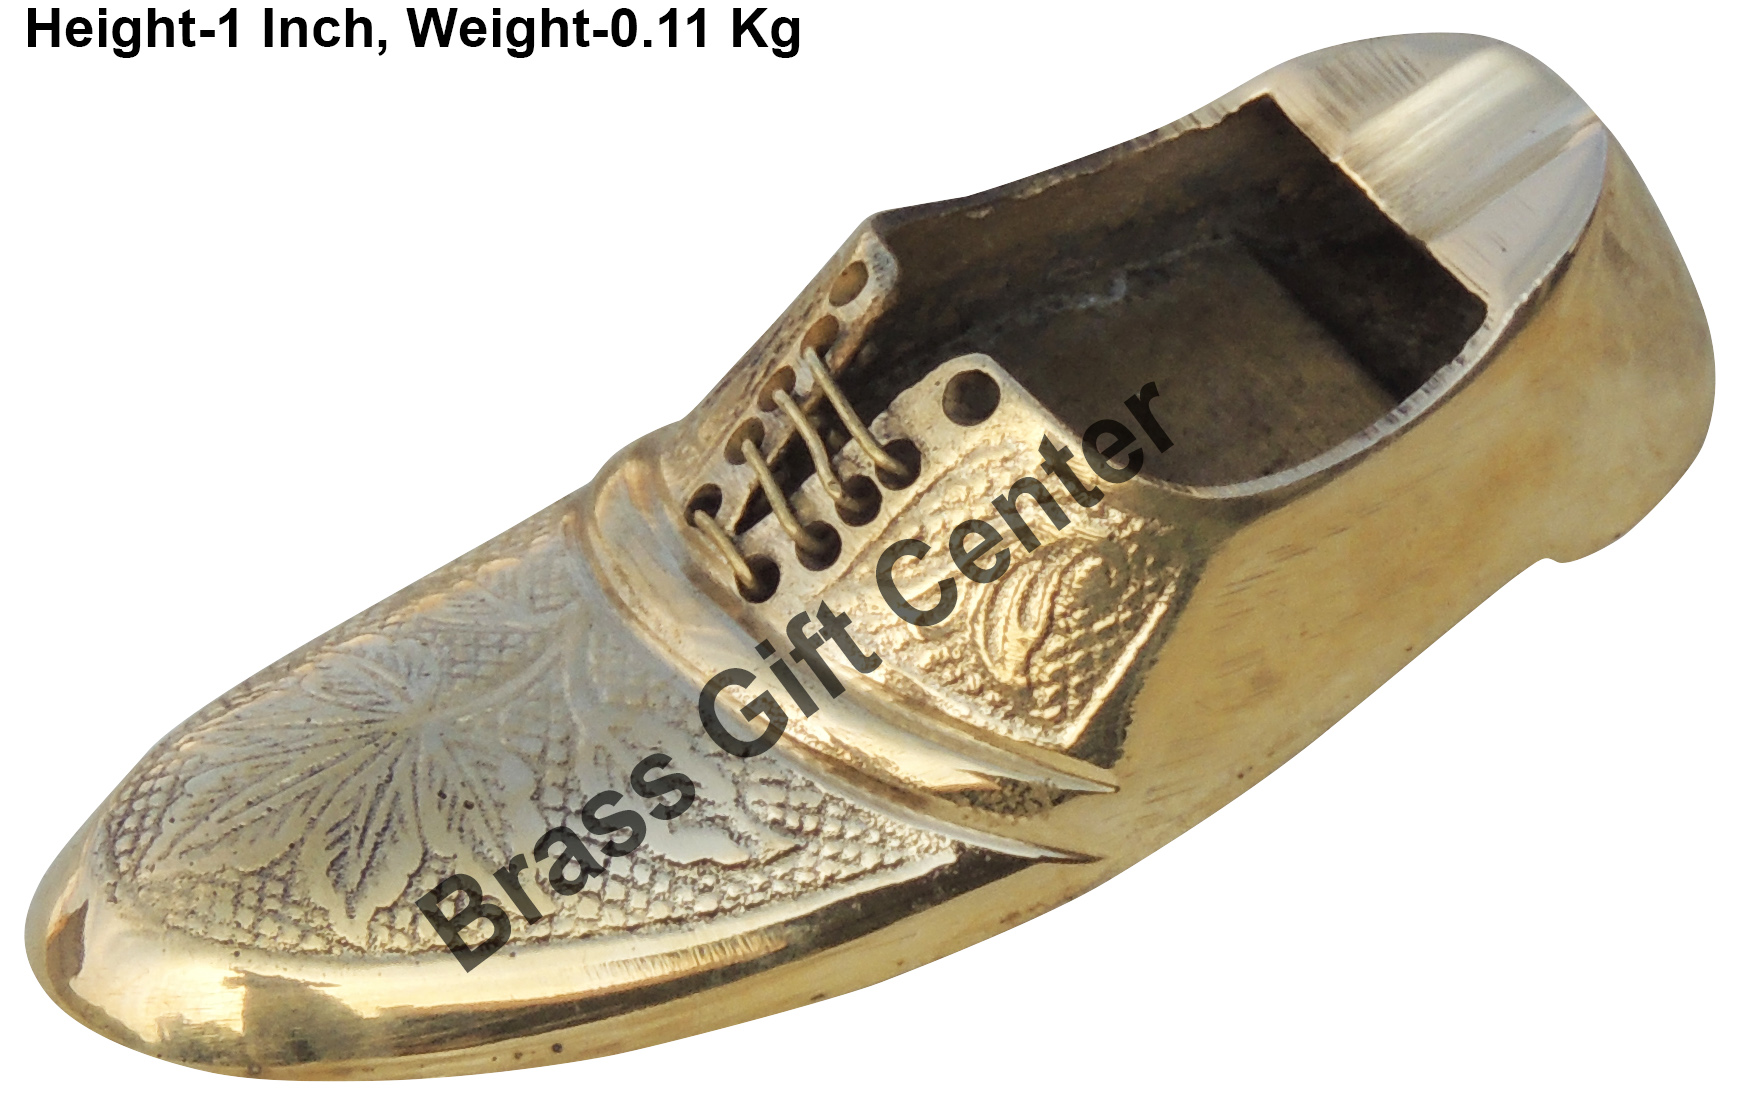 Brass Ash Tray In Shoe Design - 4.41.61 Inch  Z154 D